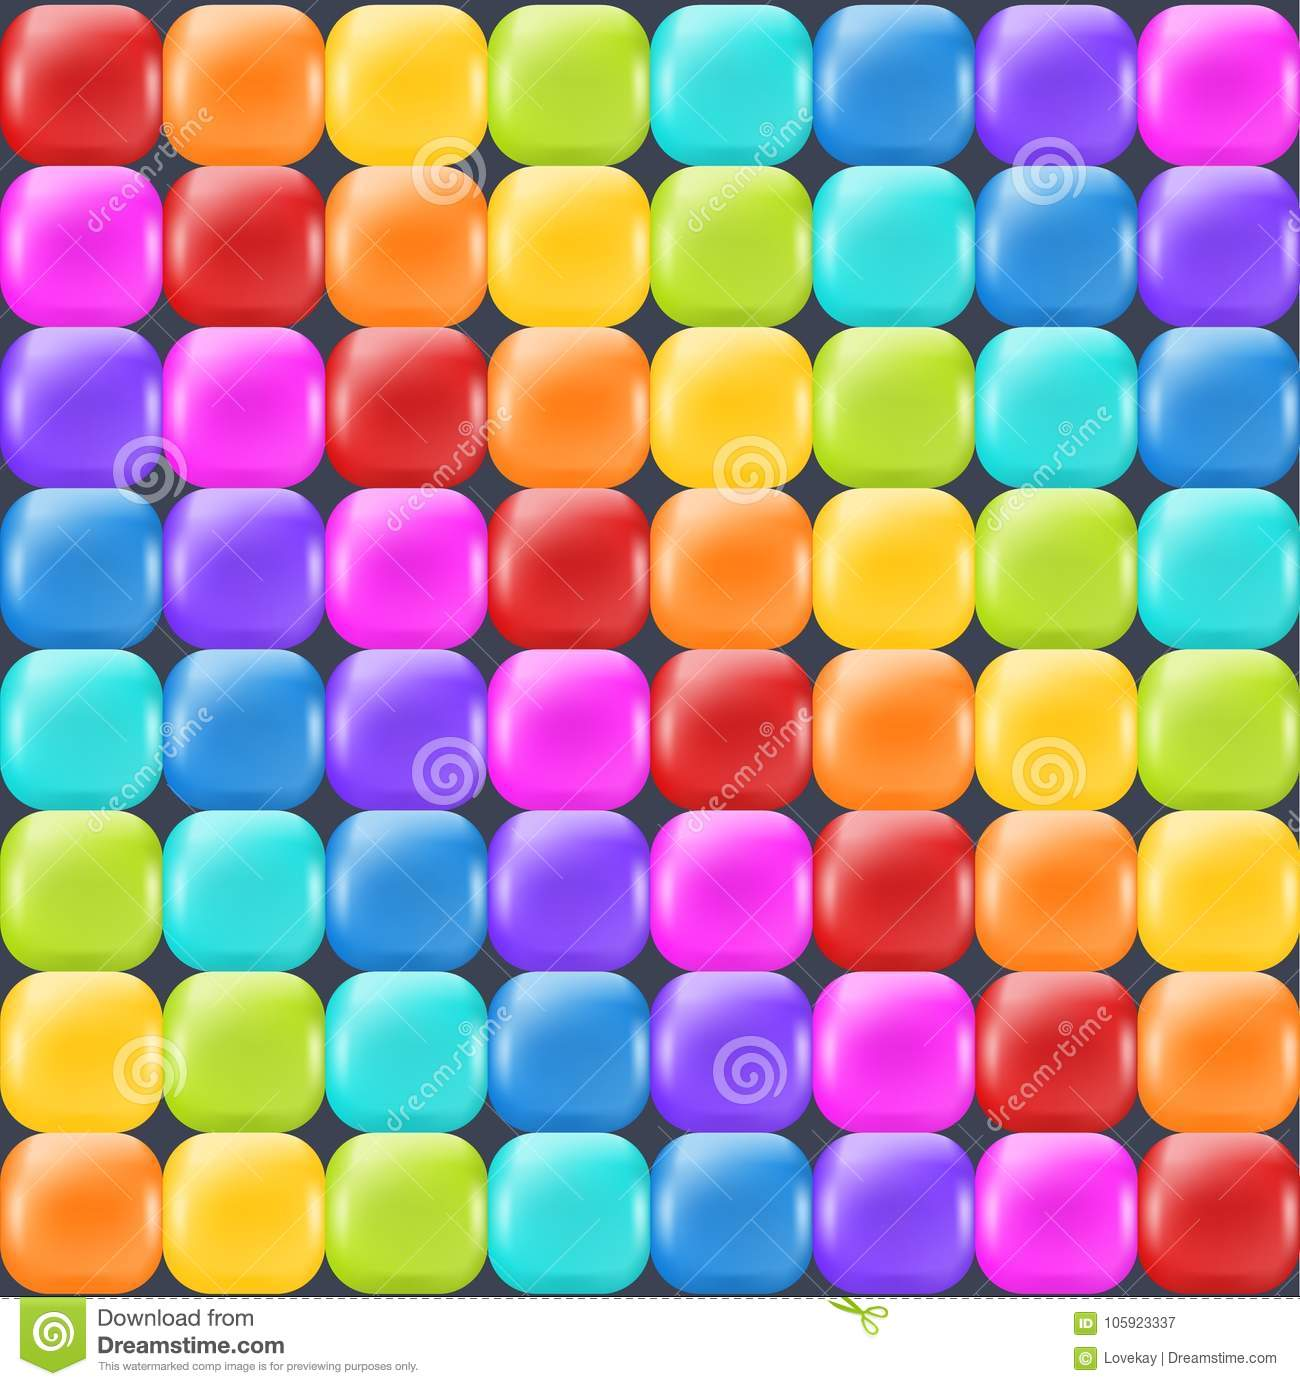 Rainbow backdrop with realistic glossy squares. Fun abstract backdrop for decor and selebration.